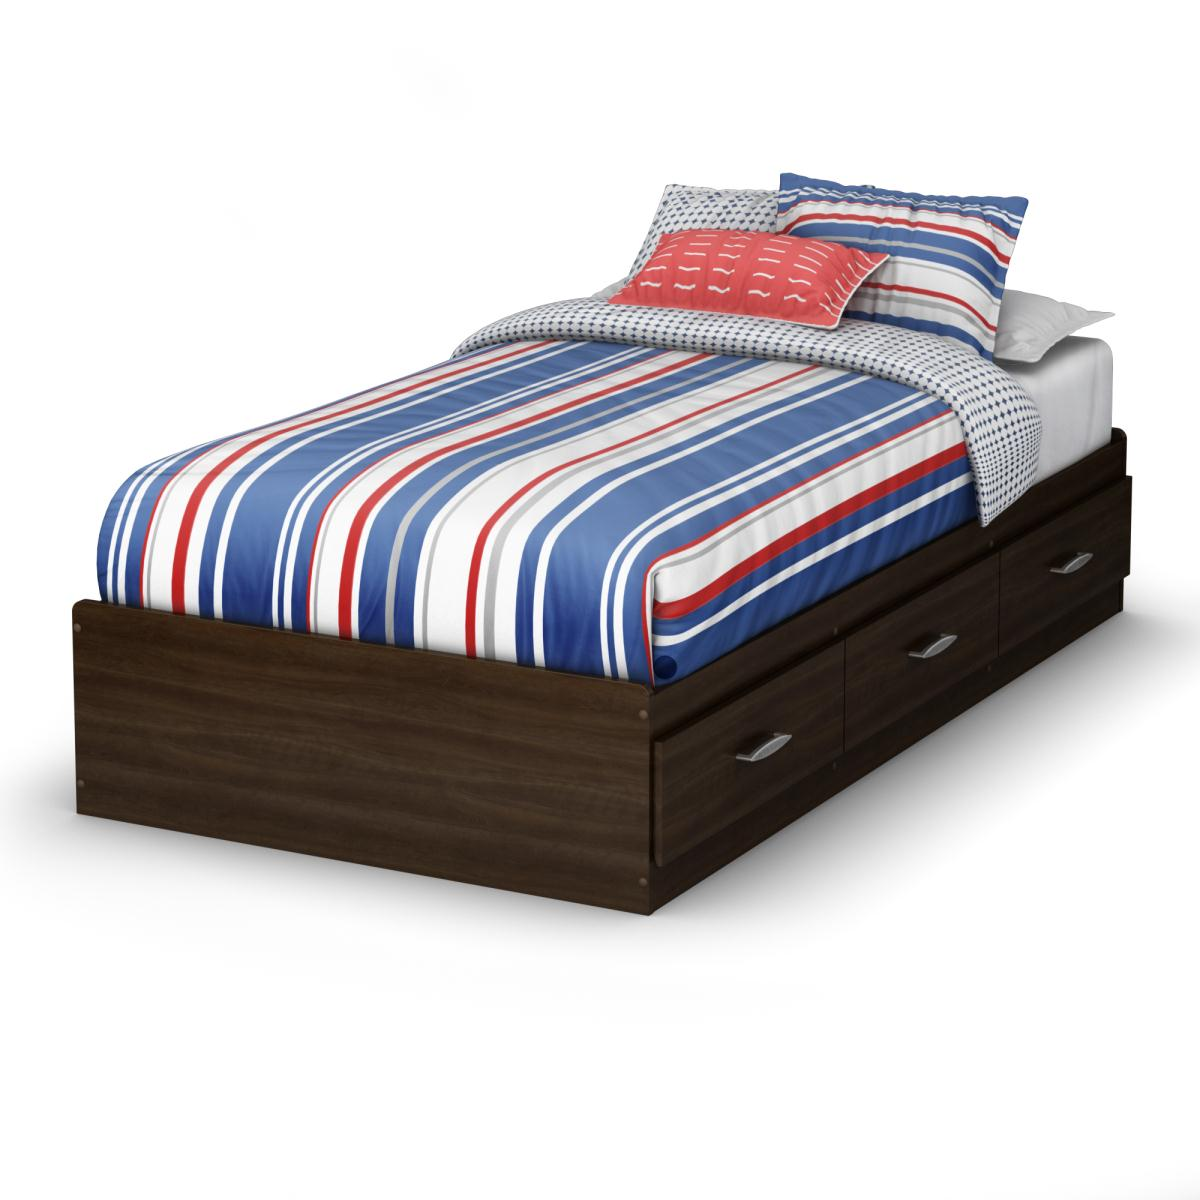 South Shore Highway Twin Mates Bed - Mocha